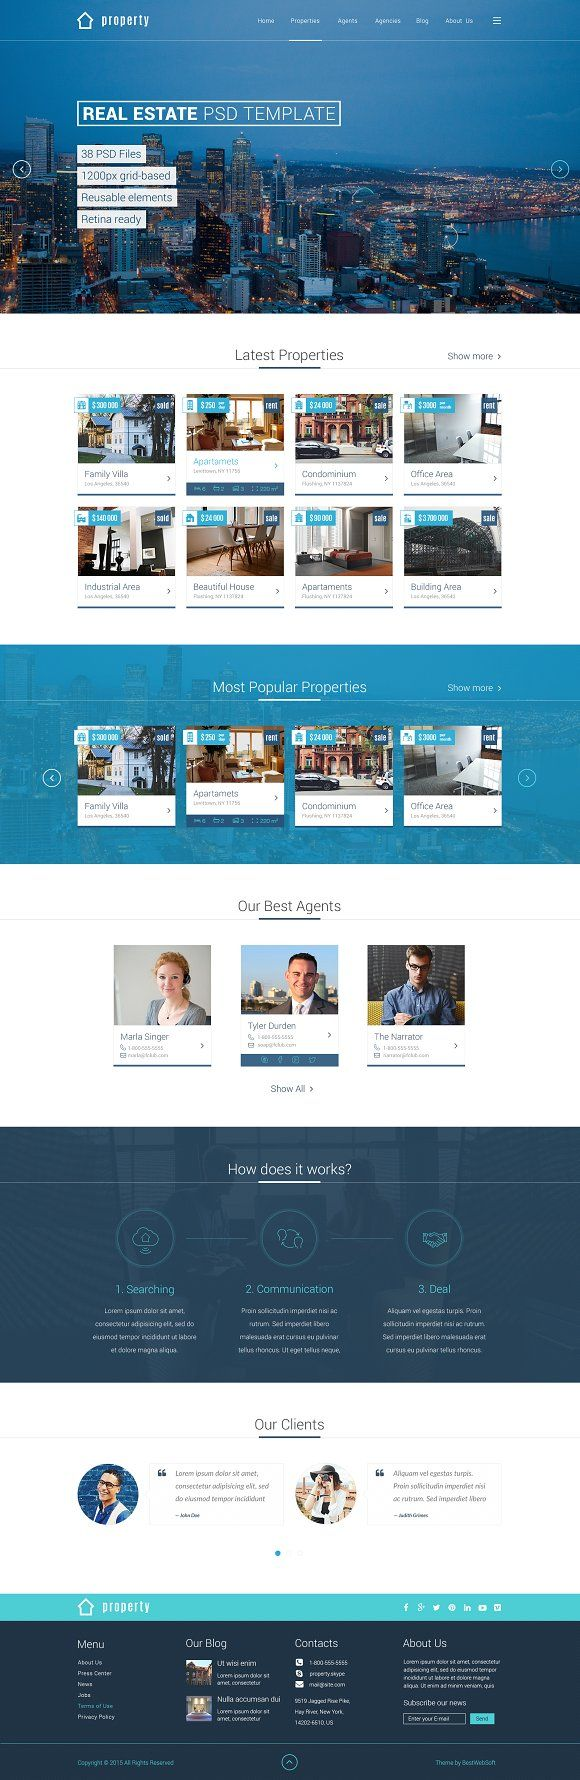 Property - Real Estate PSD Template by bestwebsoft on @creativemarket